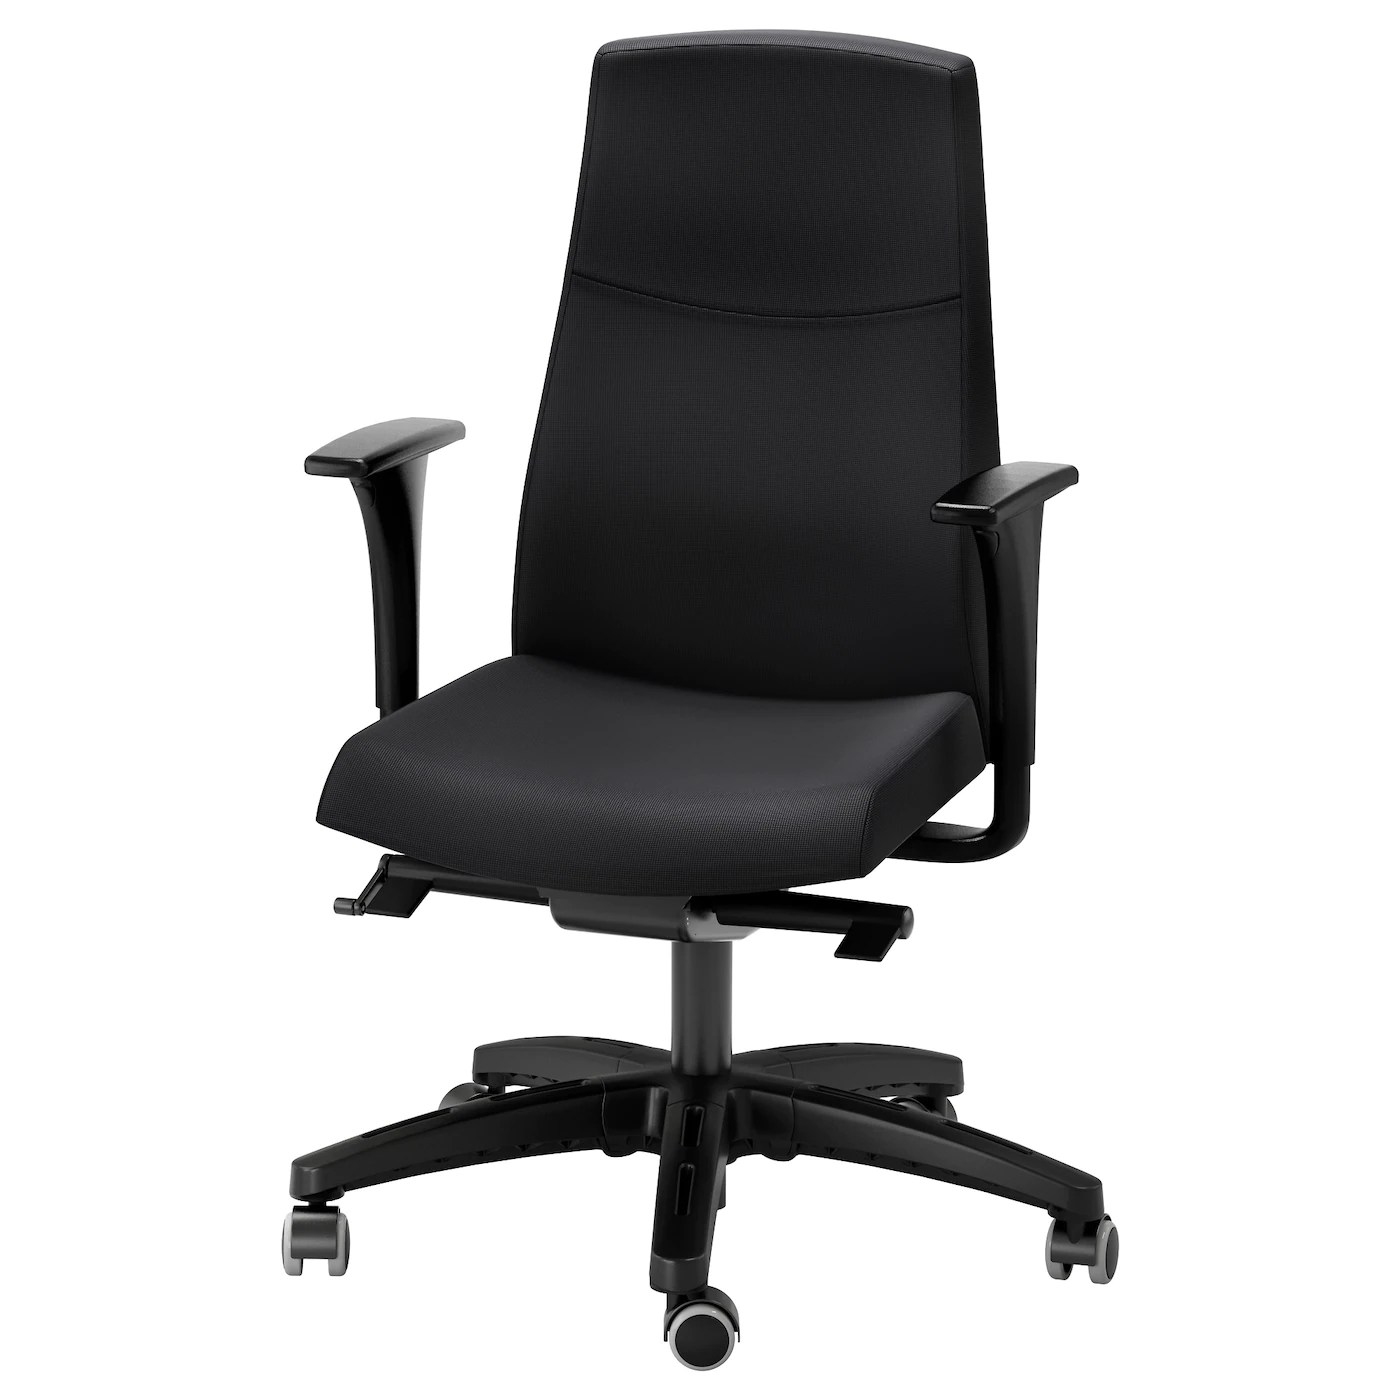 Ikea Black Chair Volmar Swivel Chair With Armrests Black Ikea